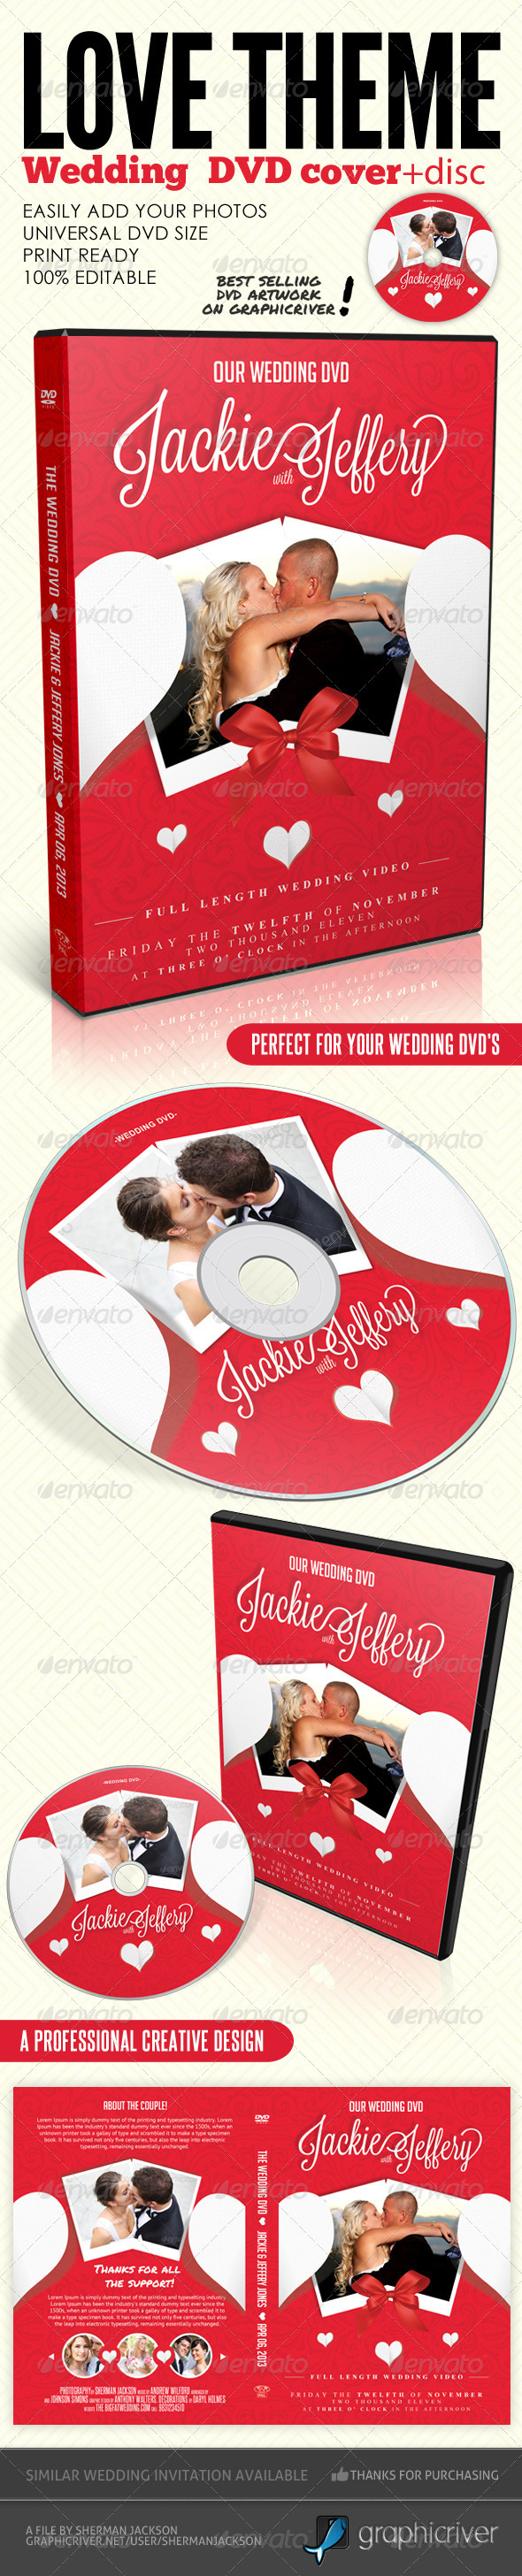 GraphicRiver Love Theme Wedding DVD Covers & Disc Label 5171594